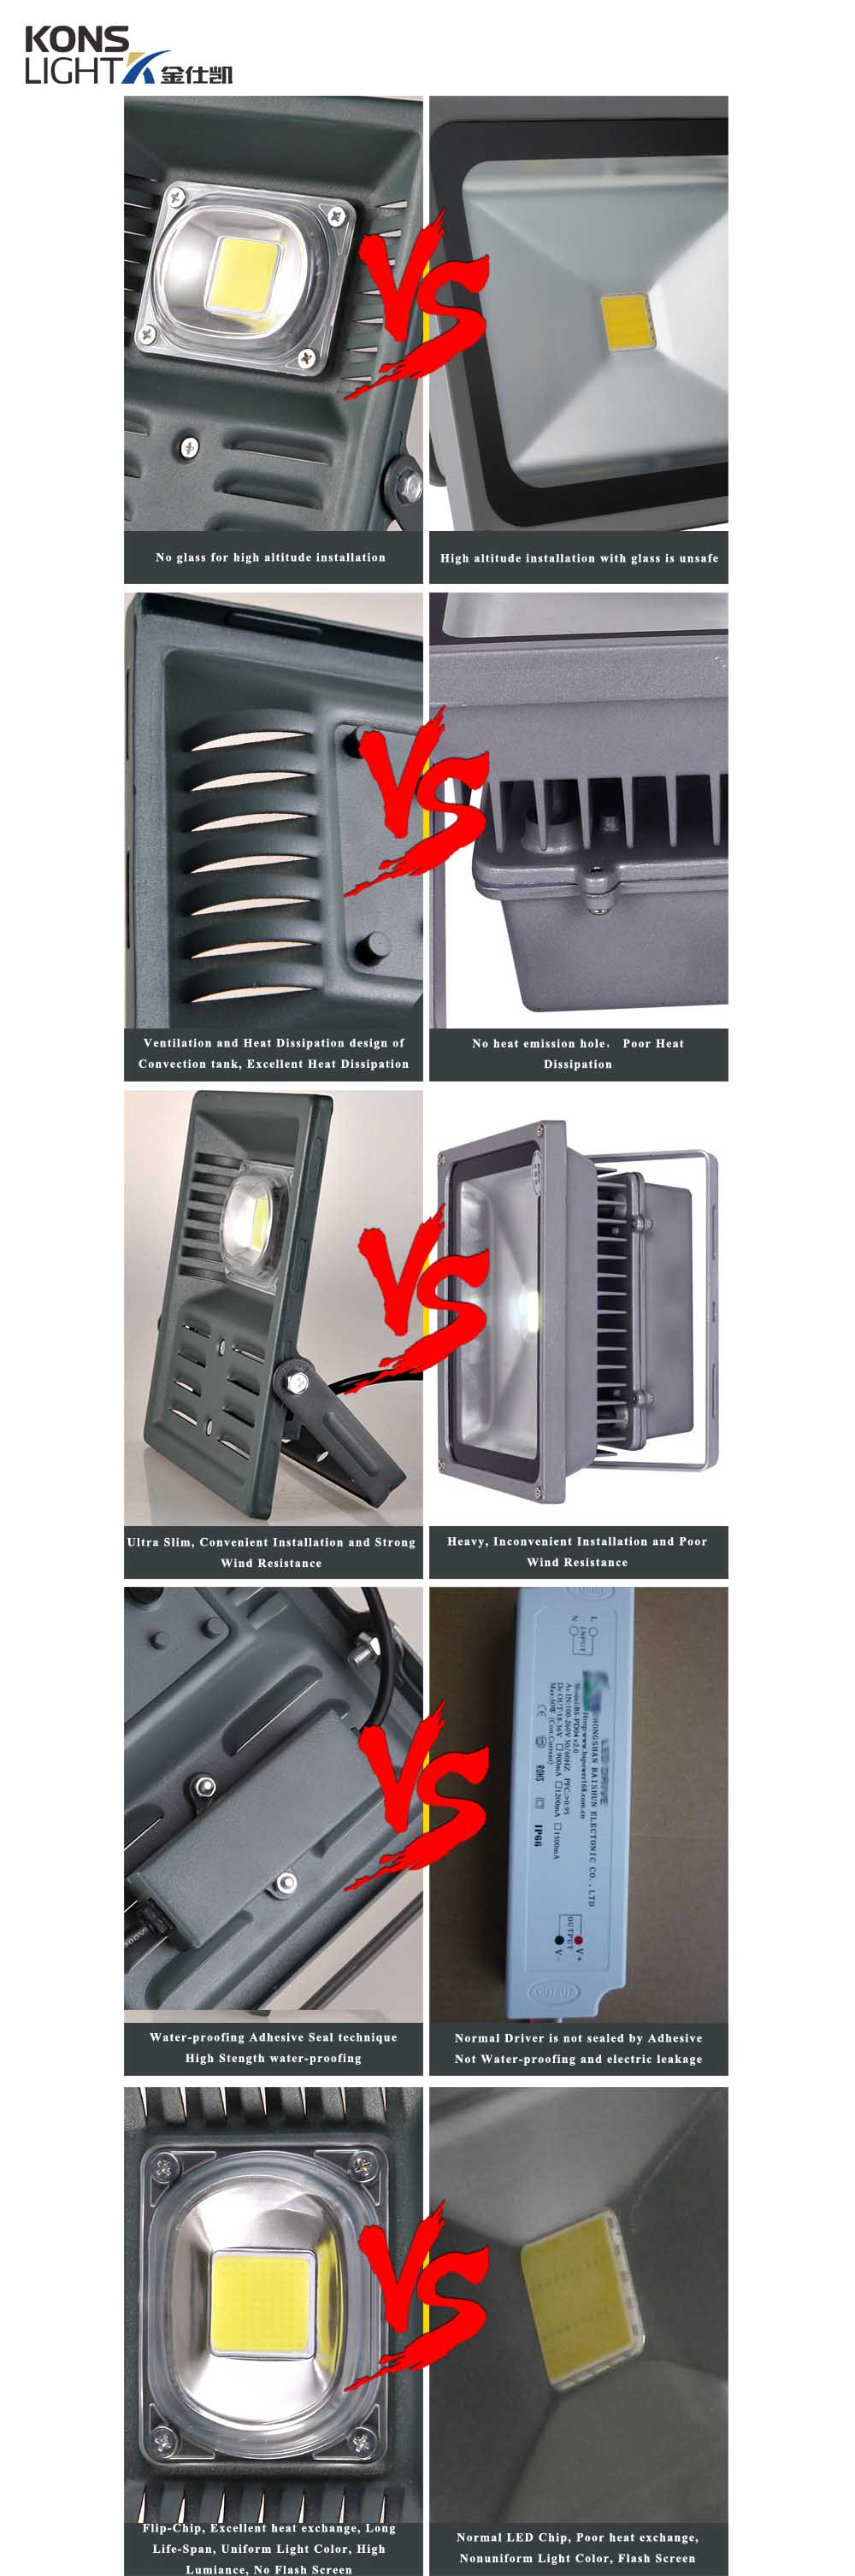 Kons-Led Light Supplier Led Cob Flood Light 50w Ip65 Die-casting Aluminium+acrylic-4